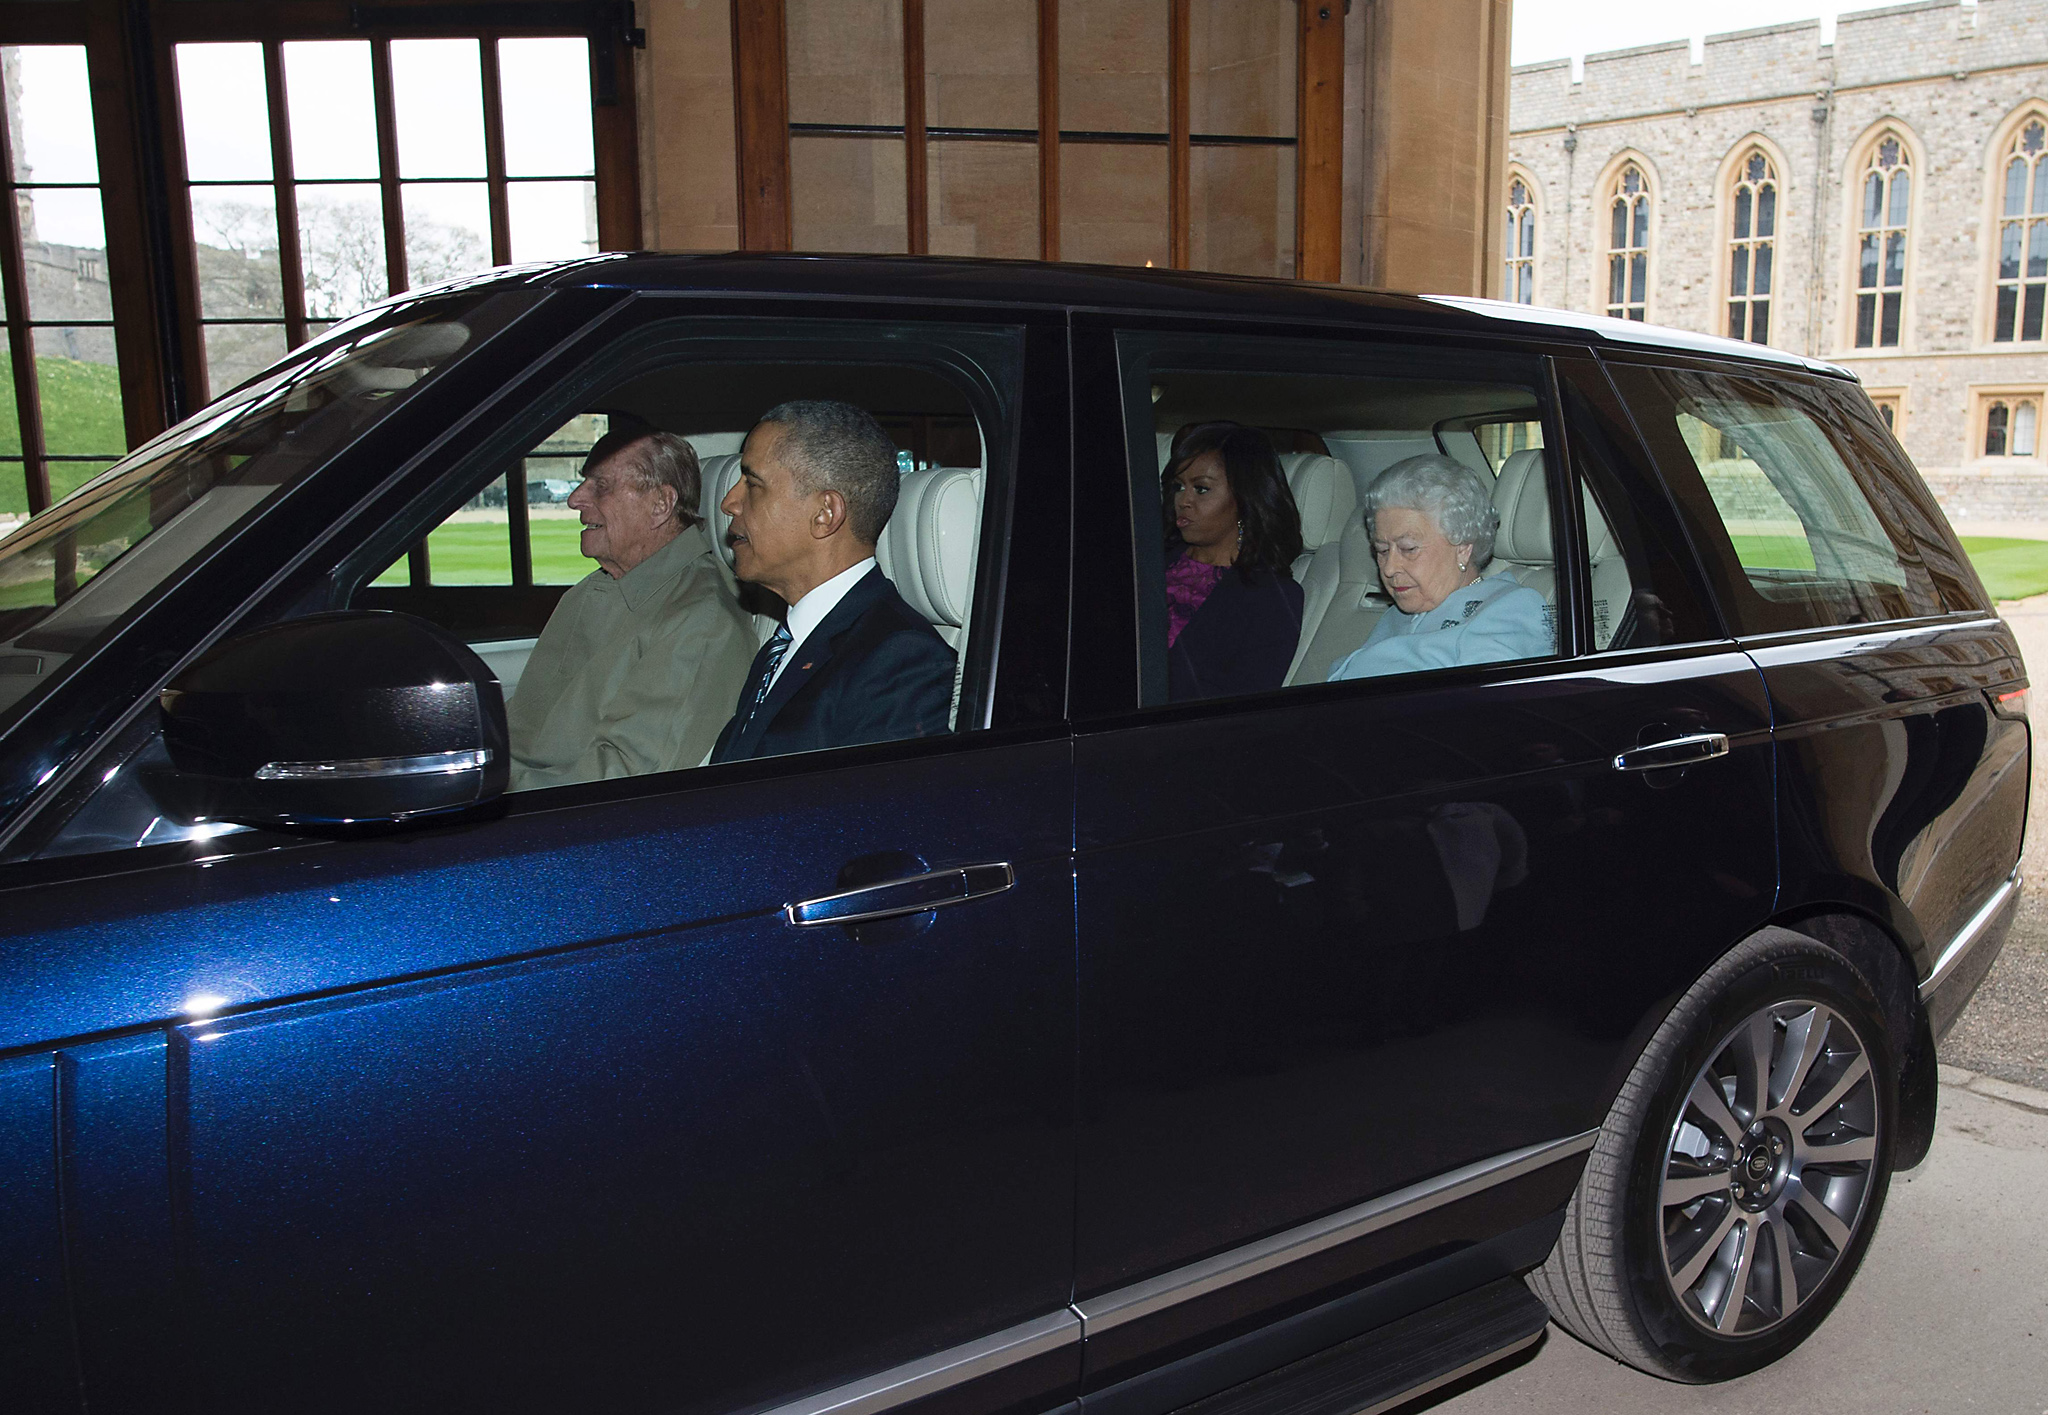 Britain's Prince Philip, Duke of Edinbur...Britain's Prince Philip, Duke of Edinburgh (L) drives US President Barack Obama (2L), US First Lady Michelle Obama (2R) and Britain's Queen Elizabeth II (R) from the helicopter into Windsor Castle after the Obama's arrived for a private lunch in Windsor, southern England, on April, 22, 2016.  / AFP PHOTO / POOL / GEOFF PUGHGEOFF PUGH/AFP/Getty Images